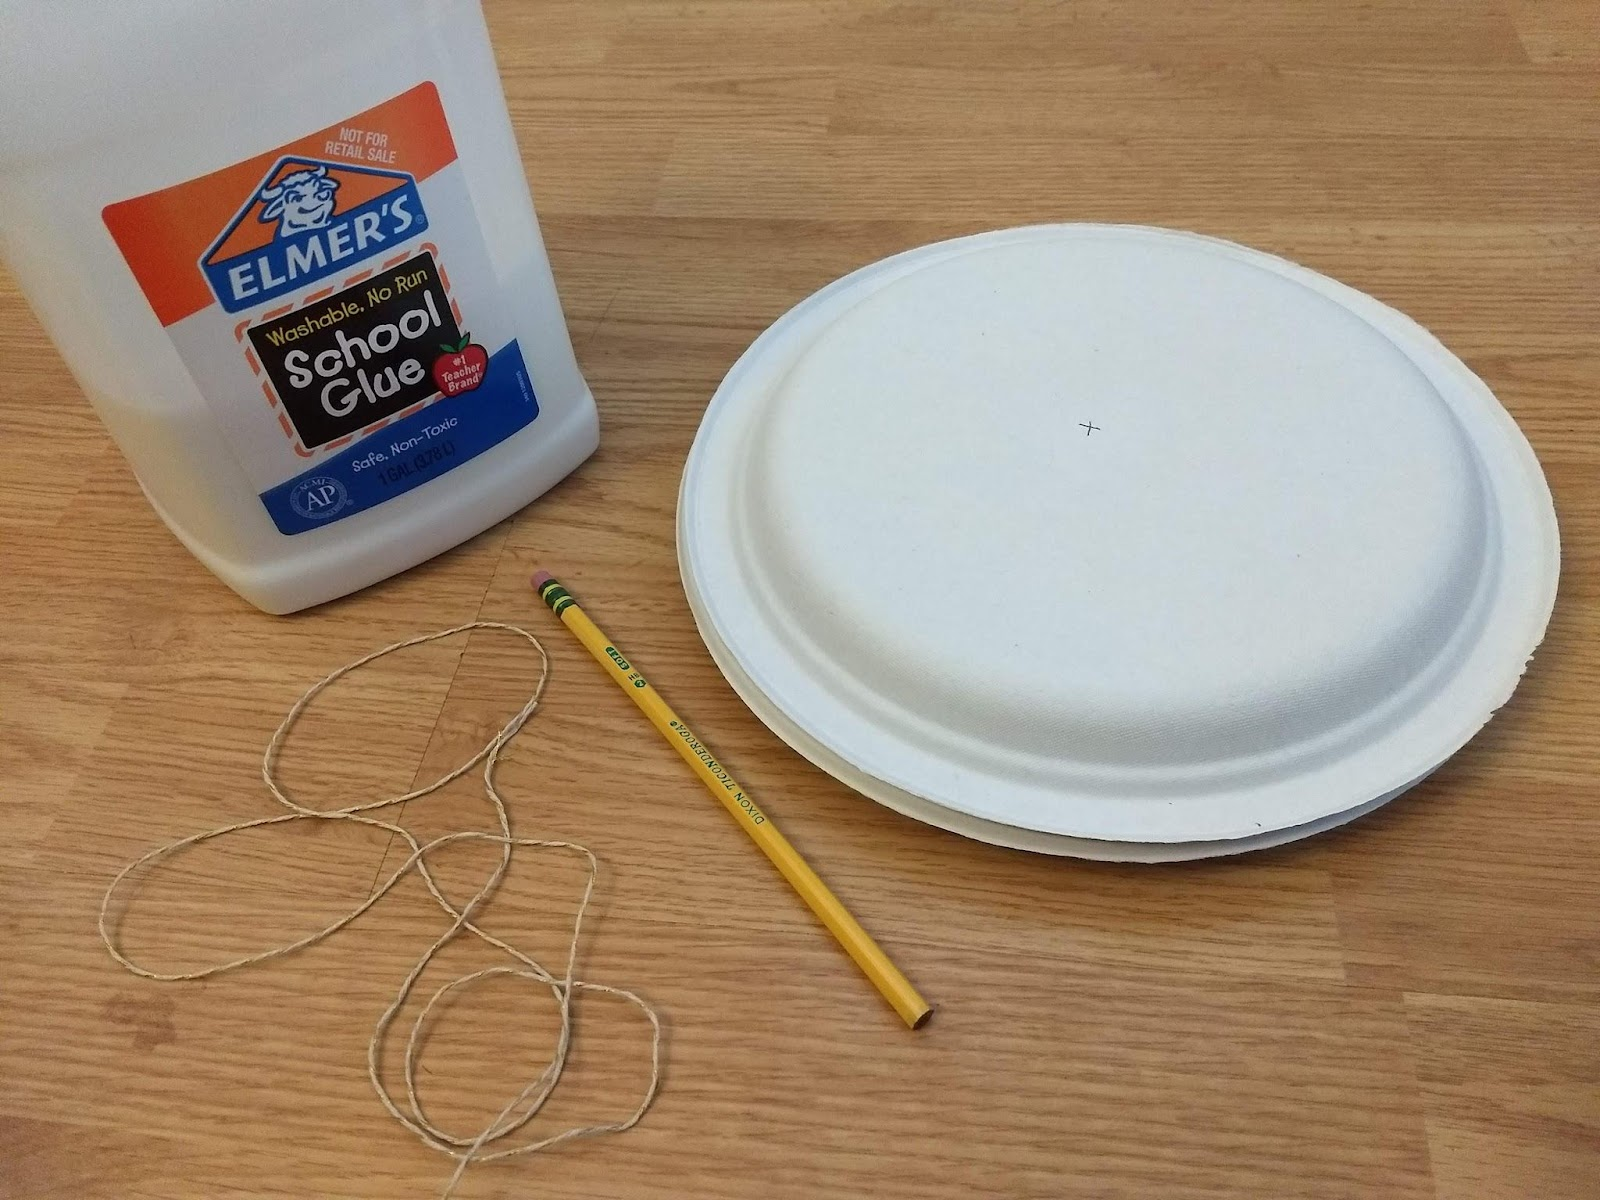 Elmer's glue, a pencil, two paper plates, and the string to pull your wheel and axle.